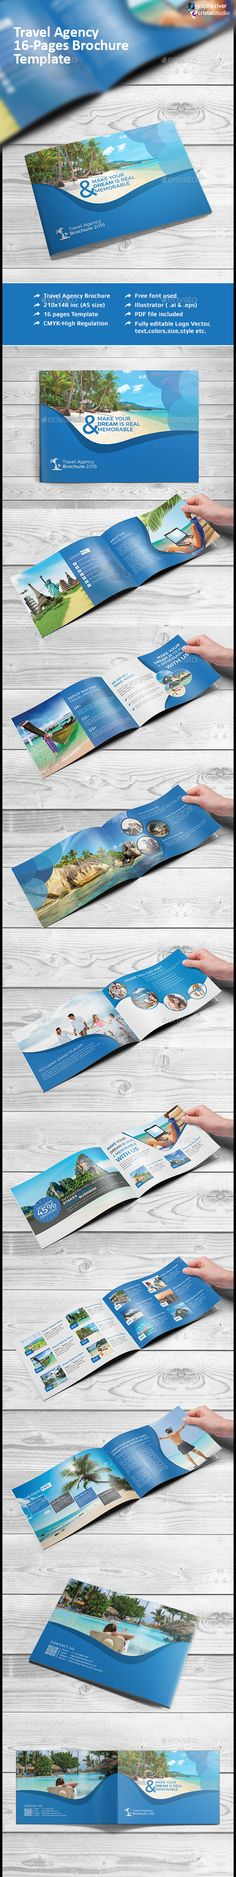 Travel Agency Brochure Catalog Indesign V  Brochures Catalog